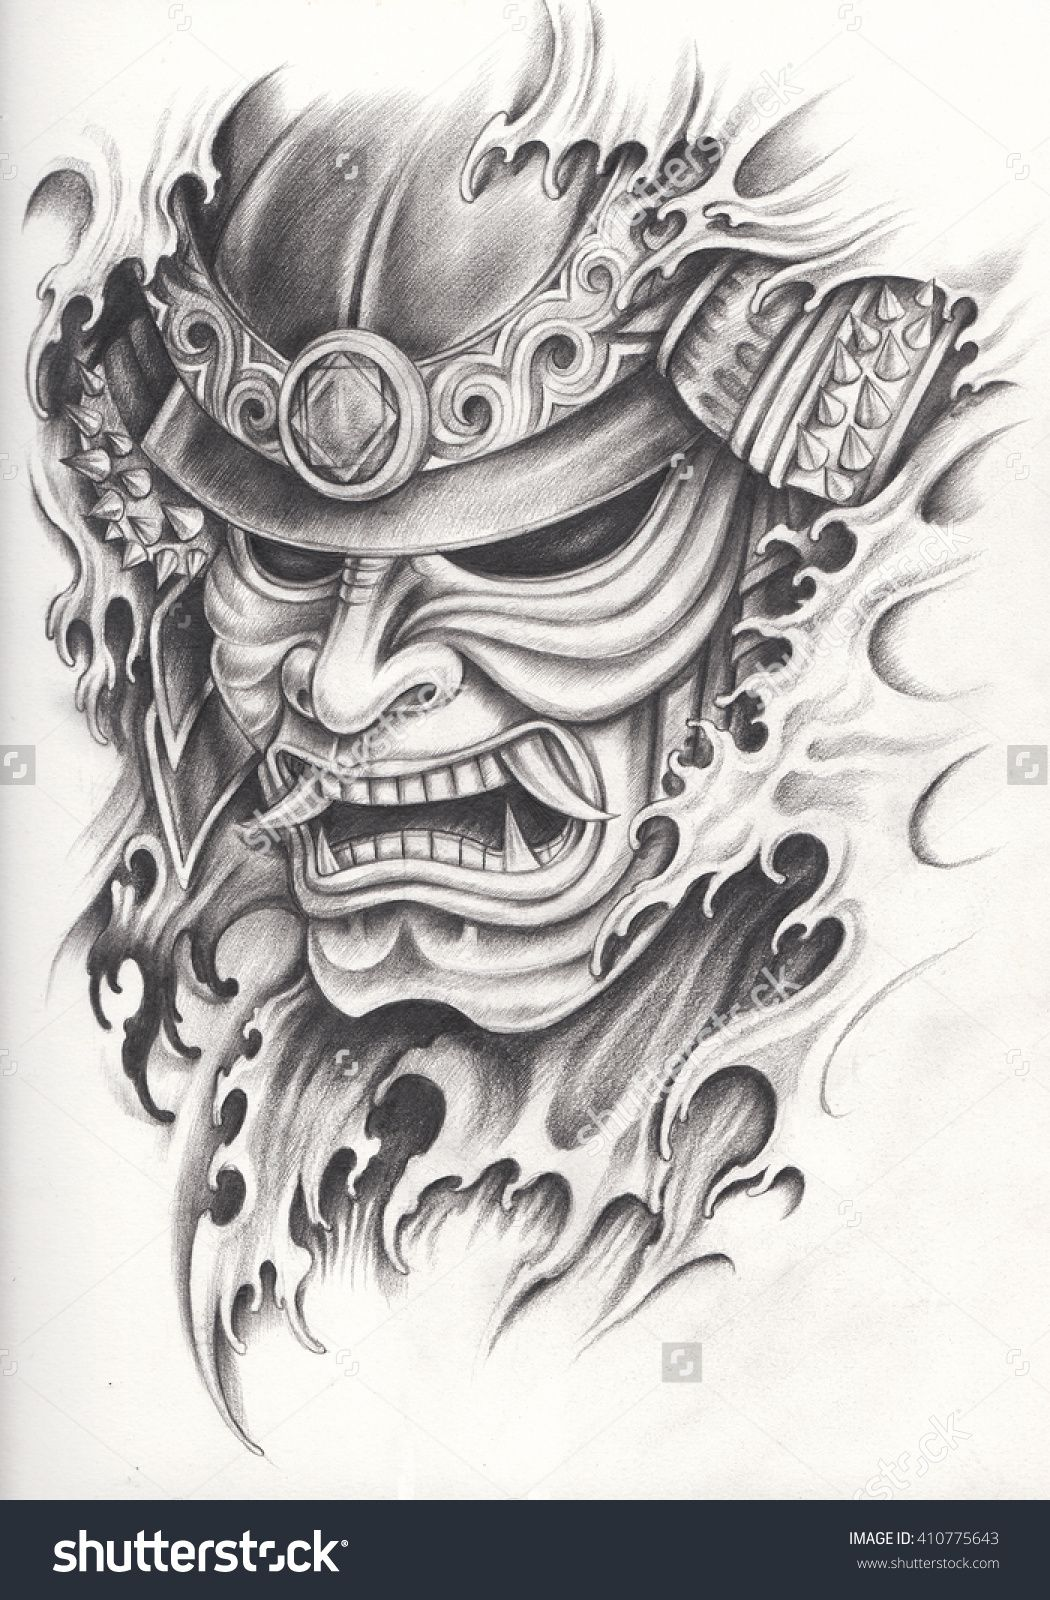 Samurai Warrior Tattoo Design Hand Pencil Drawing On Paper Warrior Tattoo Japanese Tattoo Samurai Warrior Tattoo